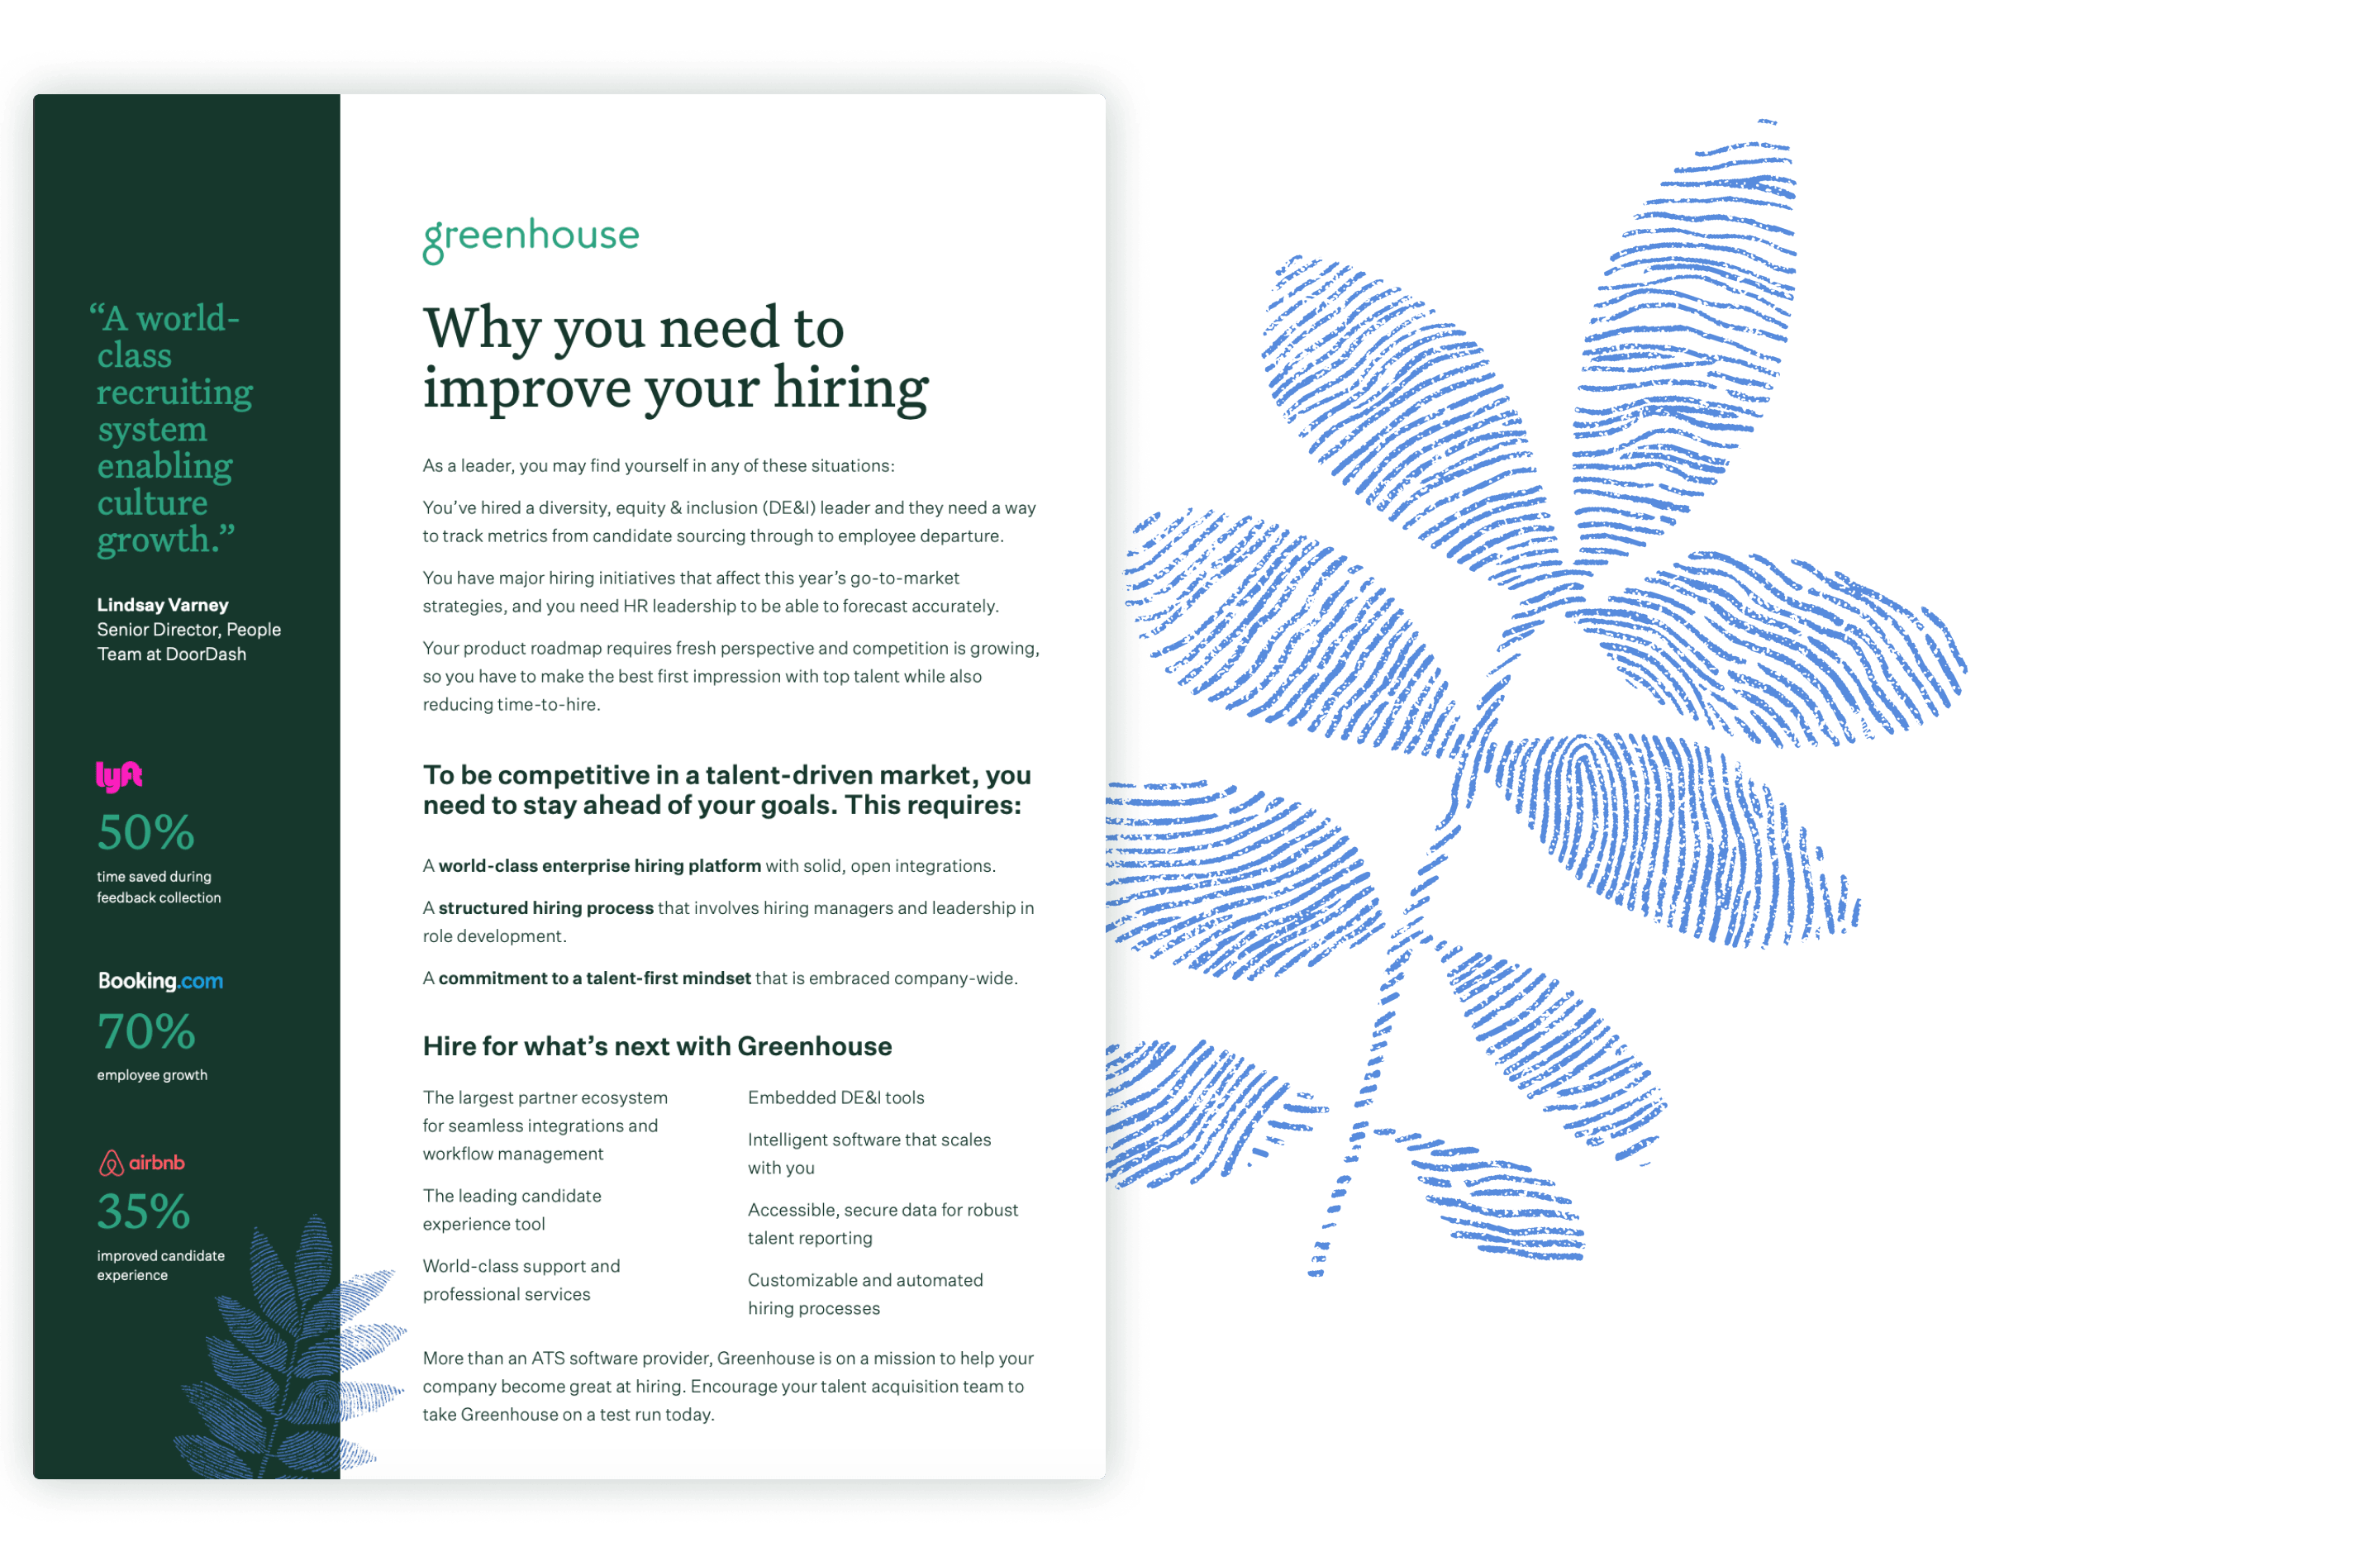 Sample pages of the why you need to improve your hiring executive one sheet